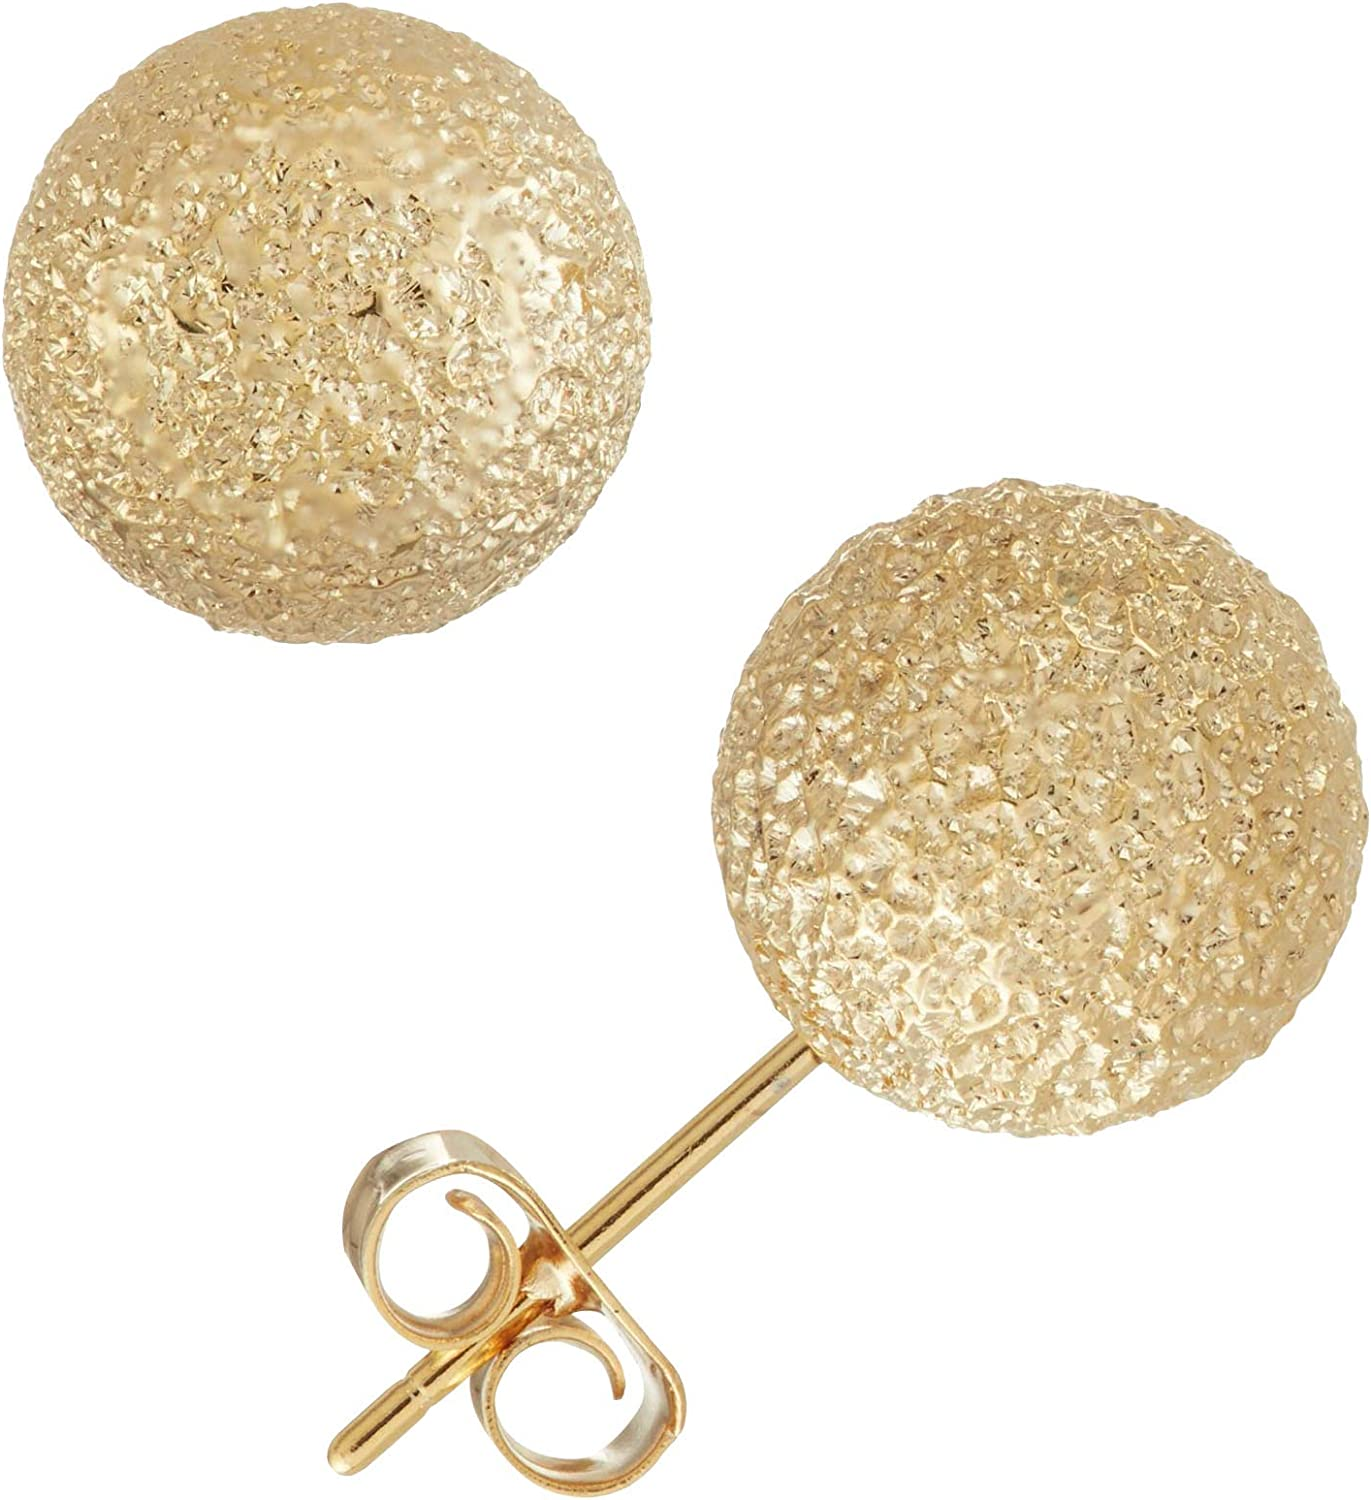 Womens Ladies Fashion Accessories Jewelry 14K Gold Plated 10mm Textured Ball Earrings